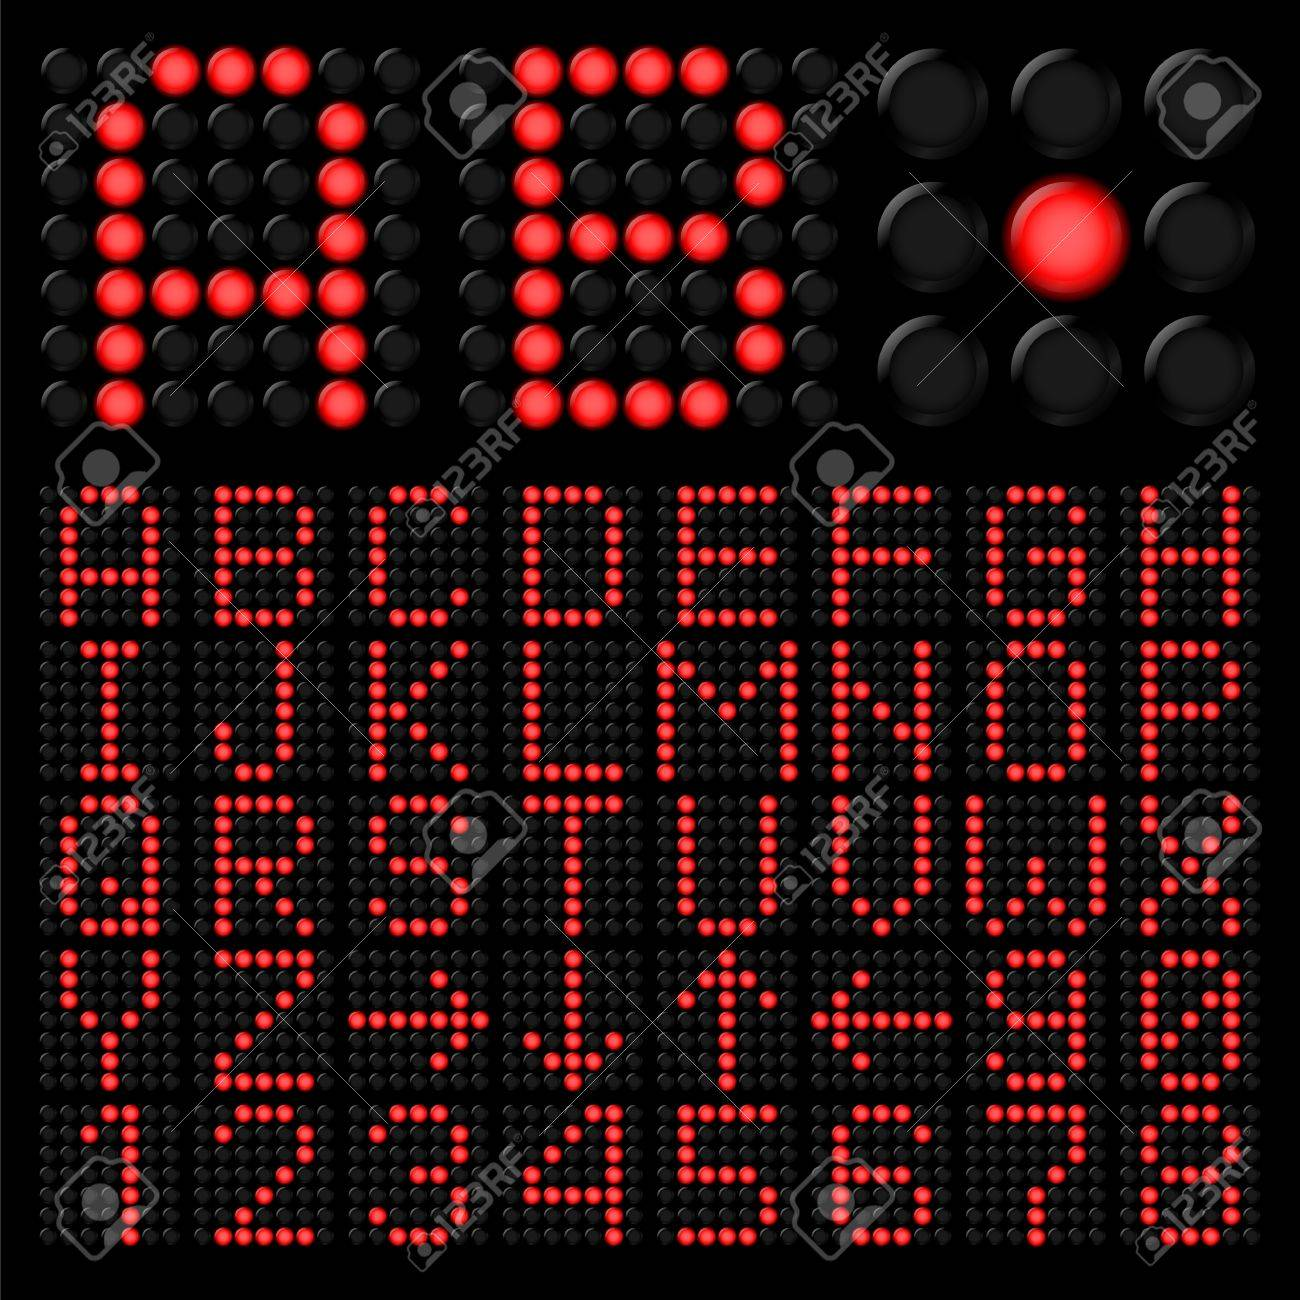 Red digital alphabetic and numeric characters on black Stock Vector - 16976785